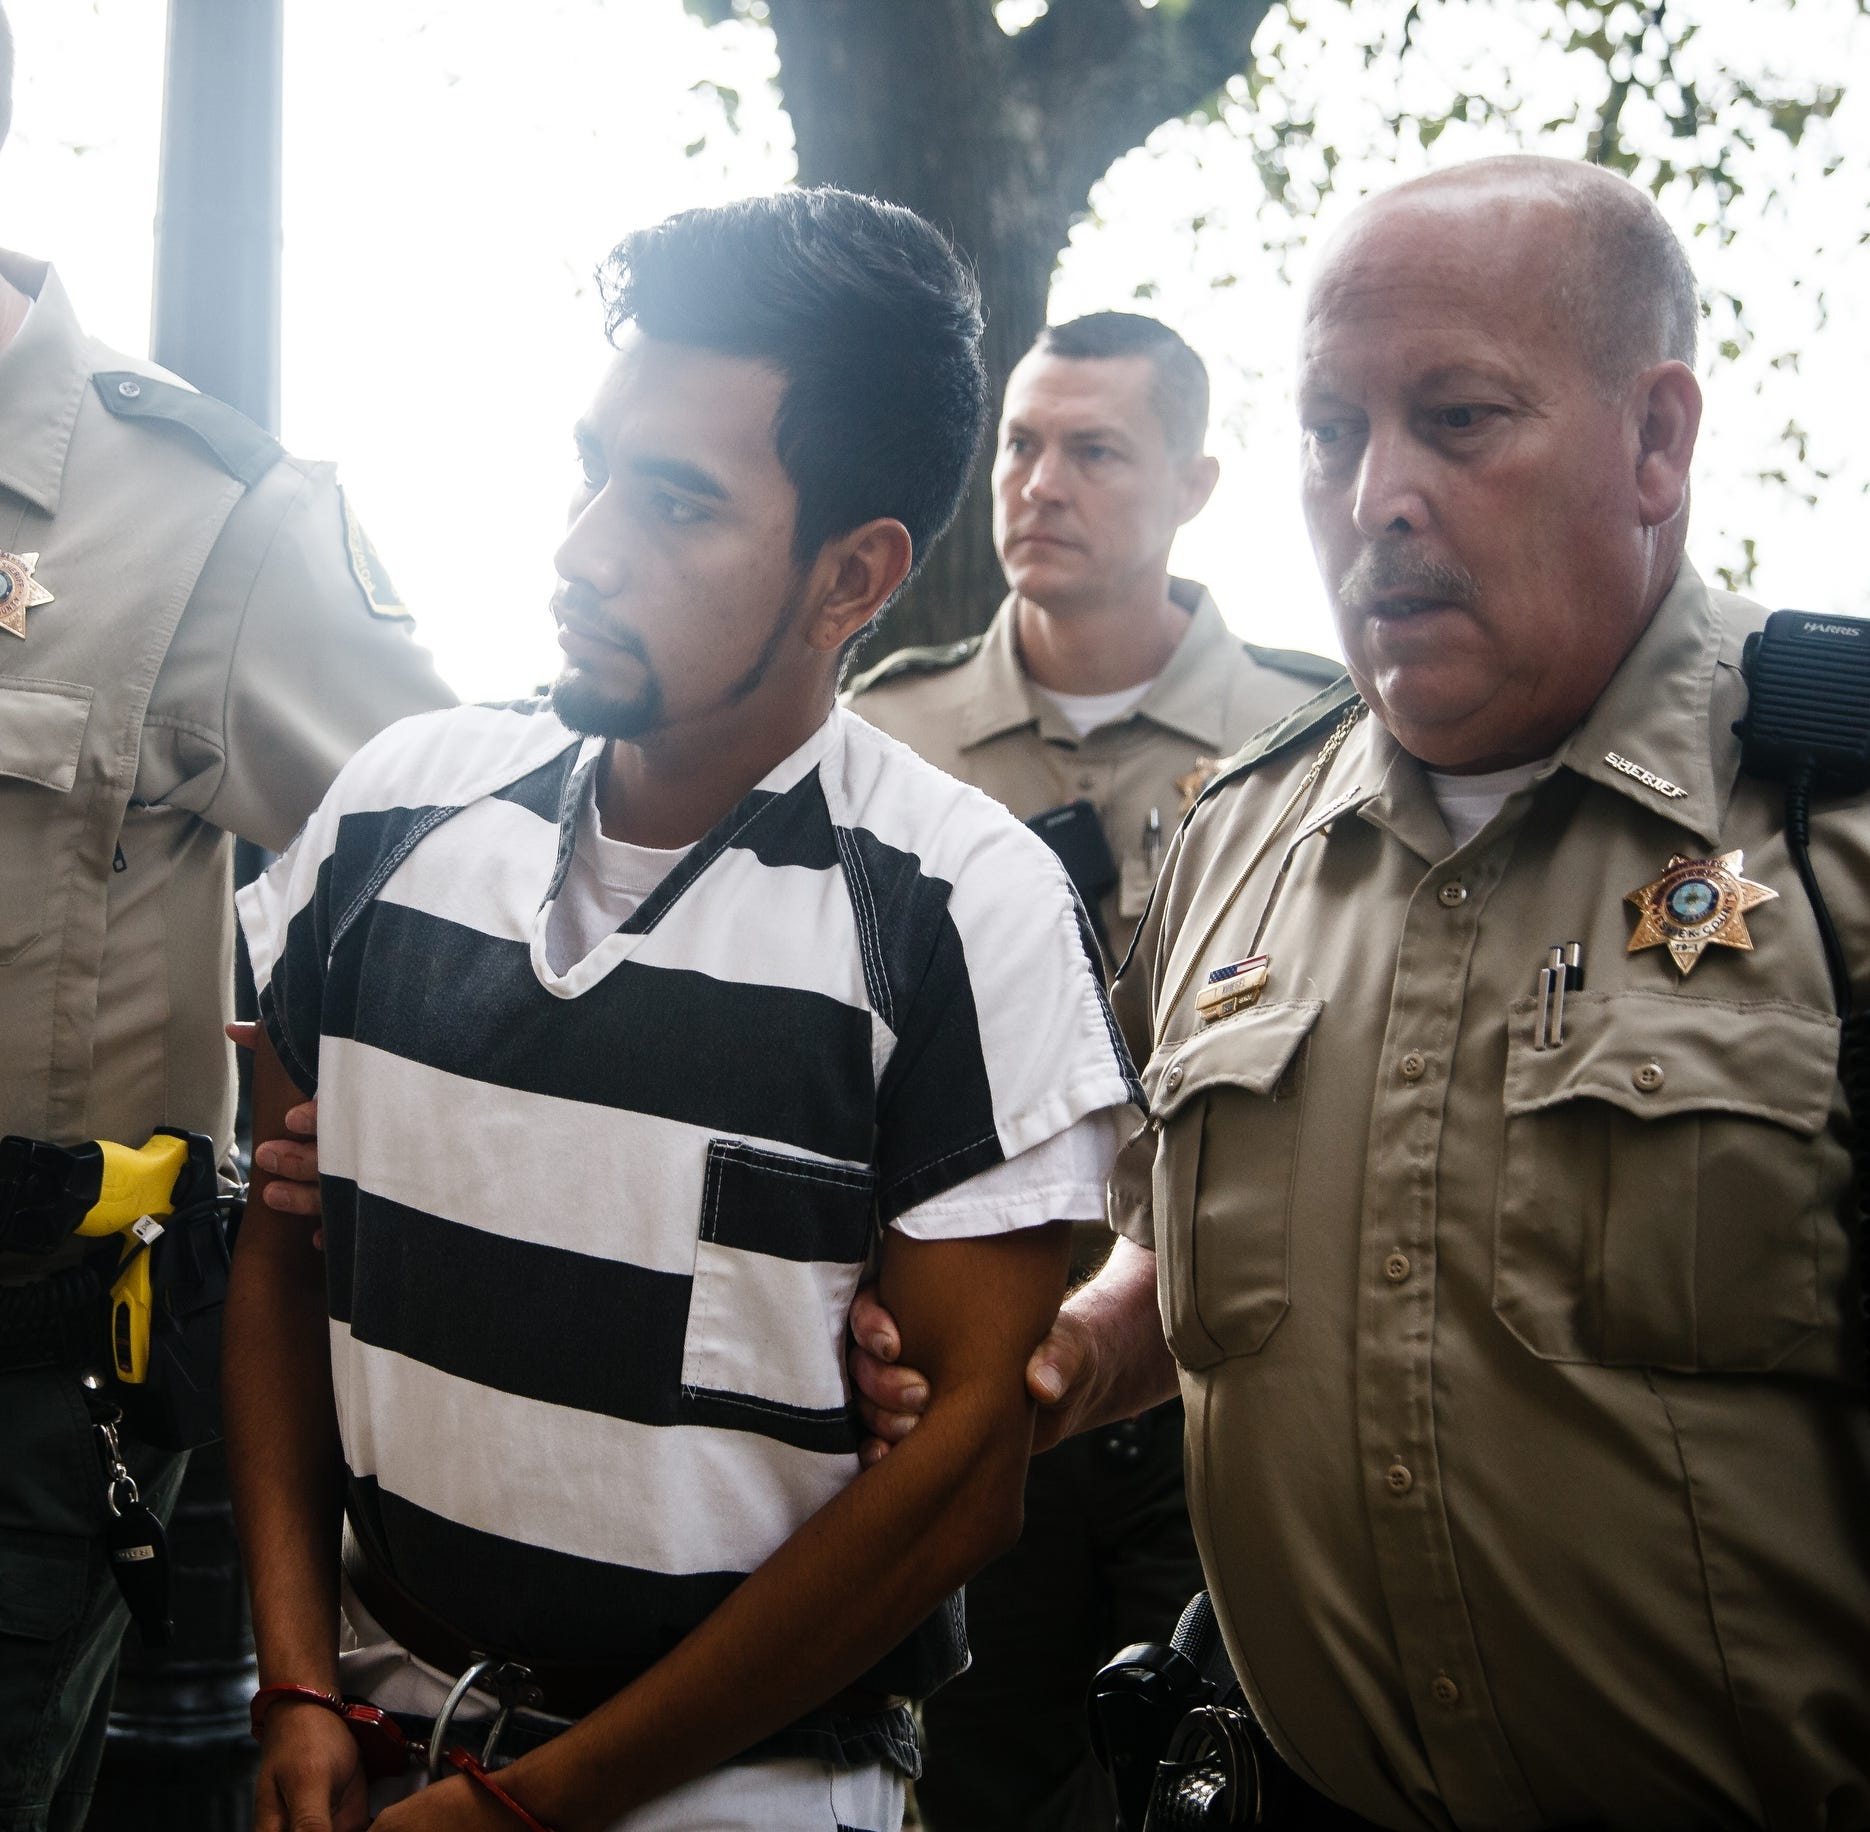 Mollie Tibbetts slaying suspect Cristhian Bahena Rivera pleads not guilty